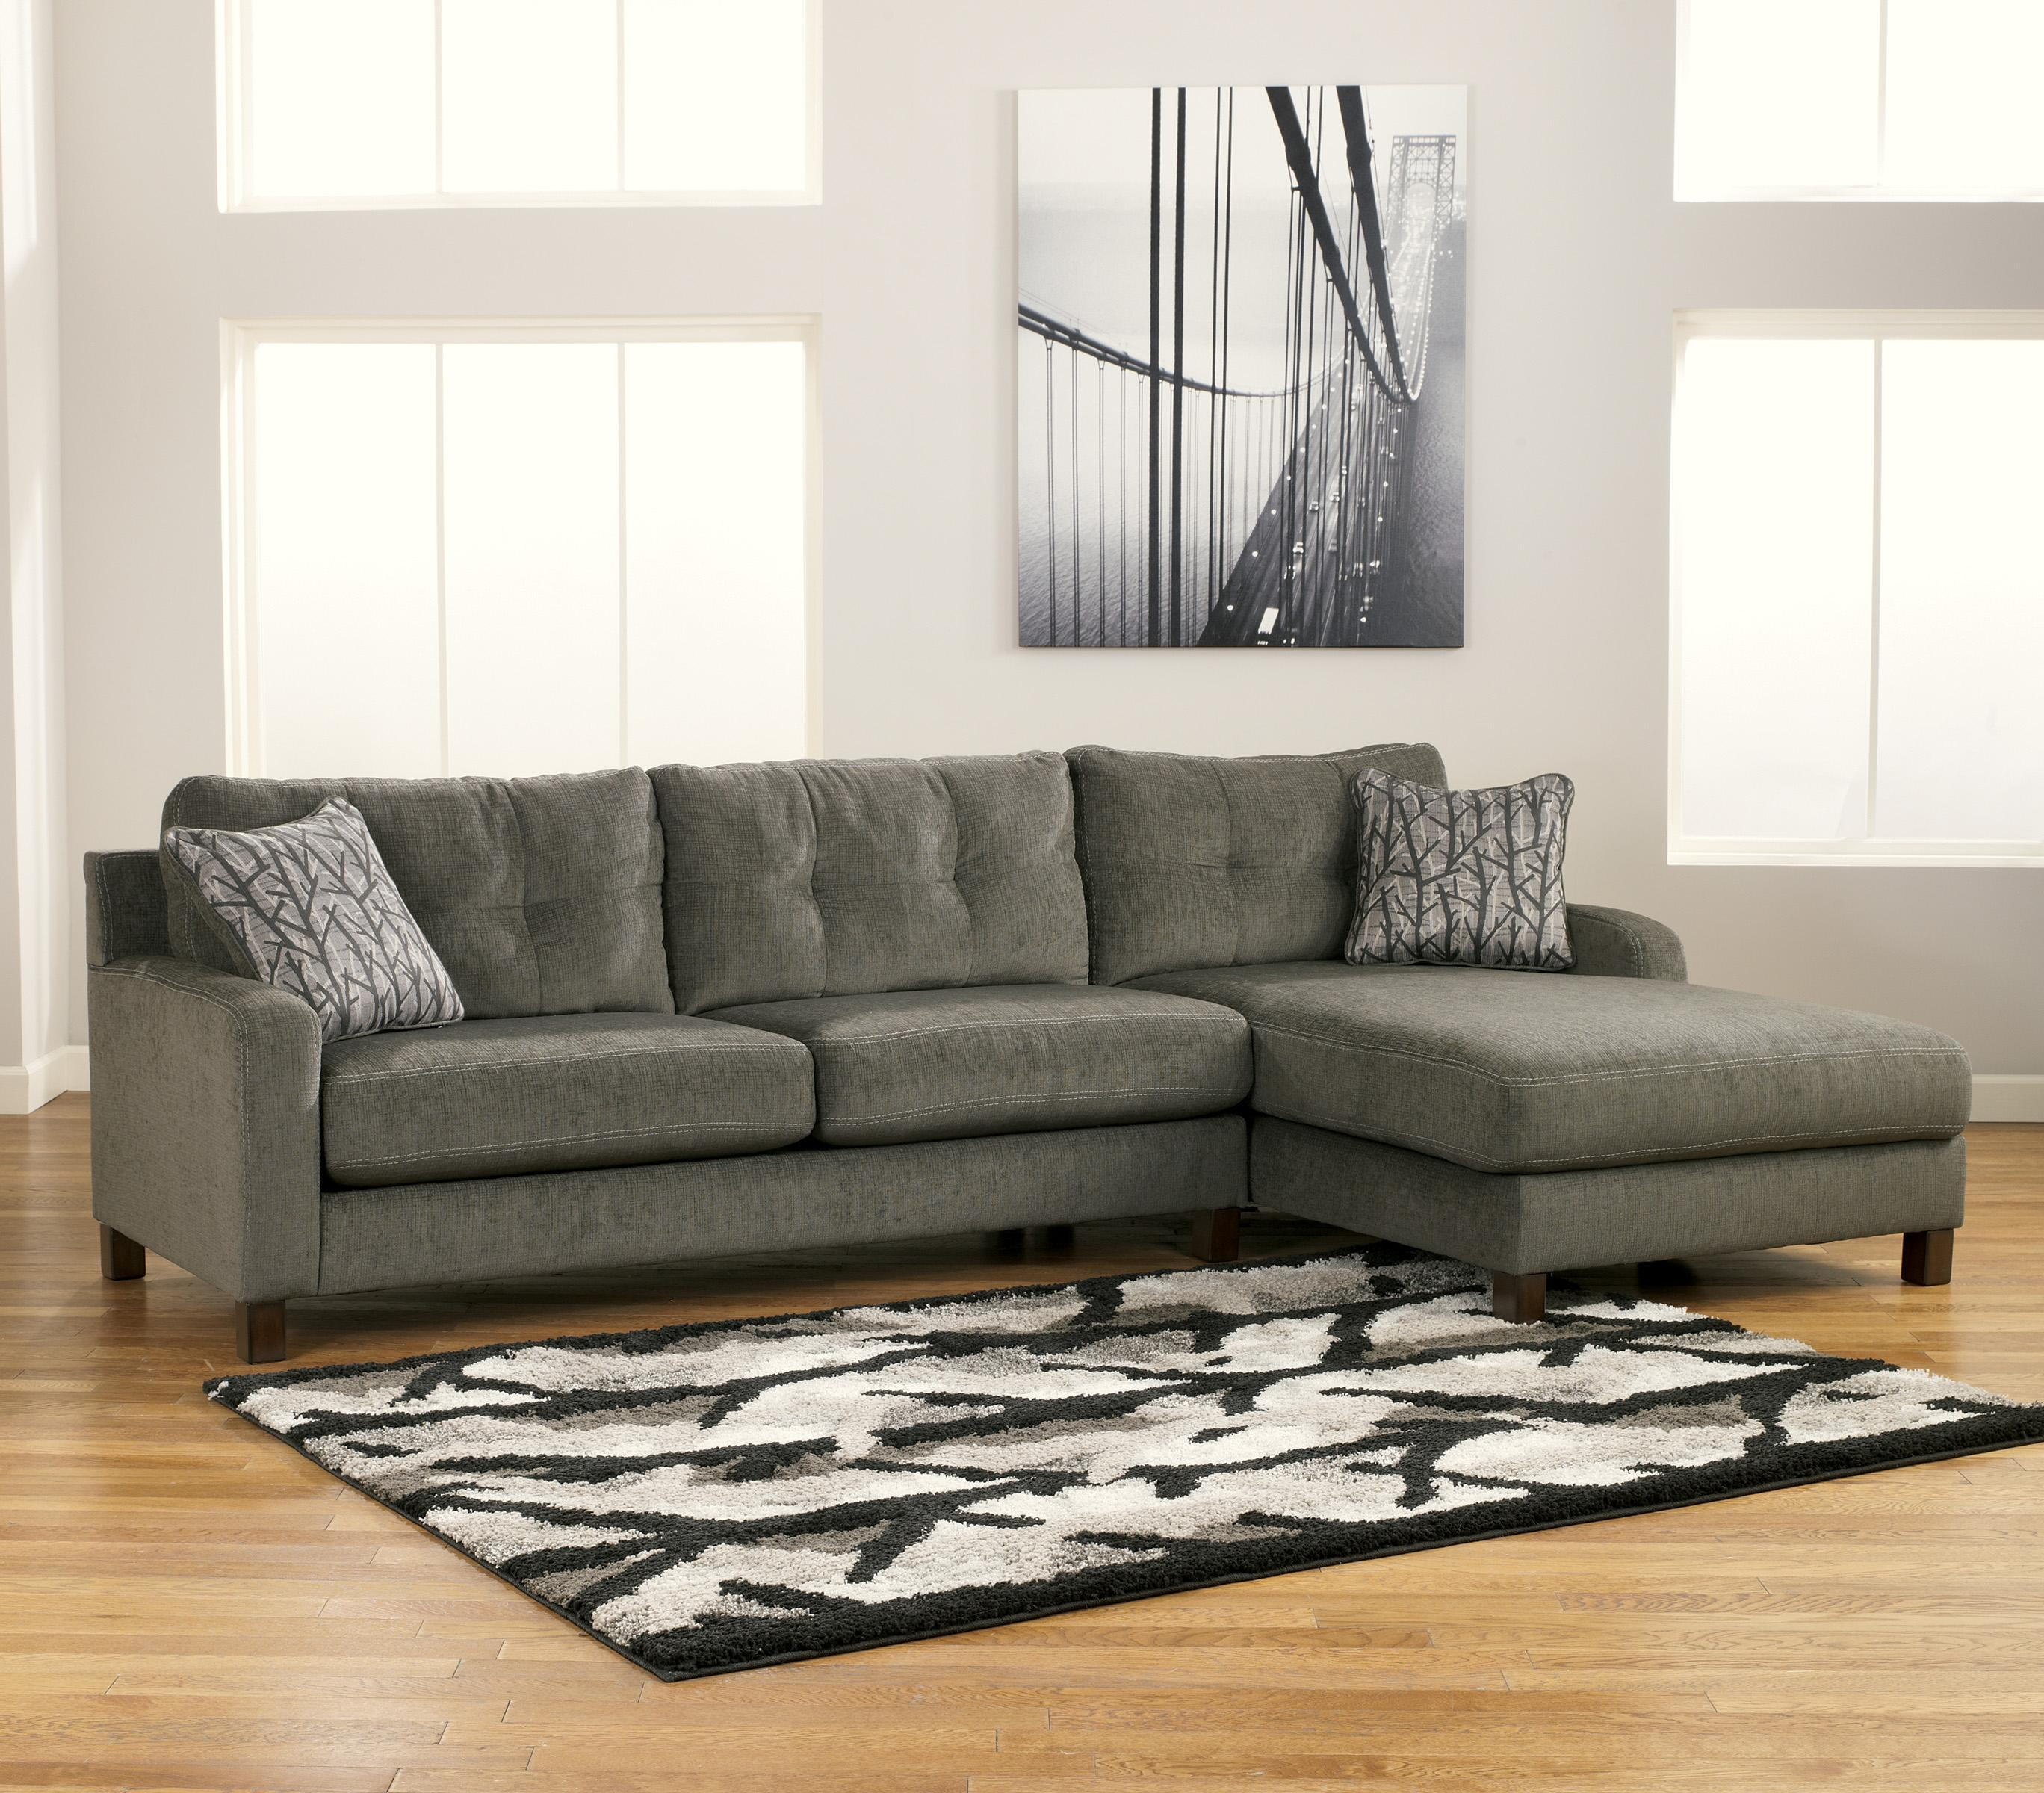 Siroun Steel Contemporary 2 Piece Sectional With Right Chaise By Signature Design Ashley